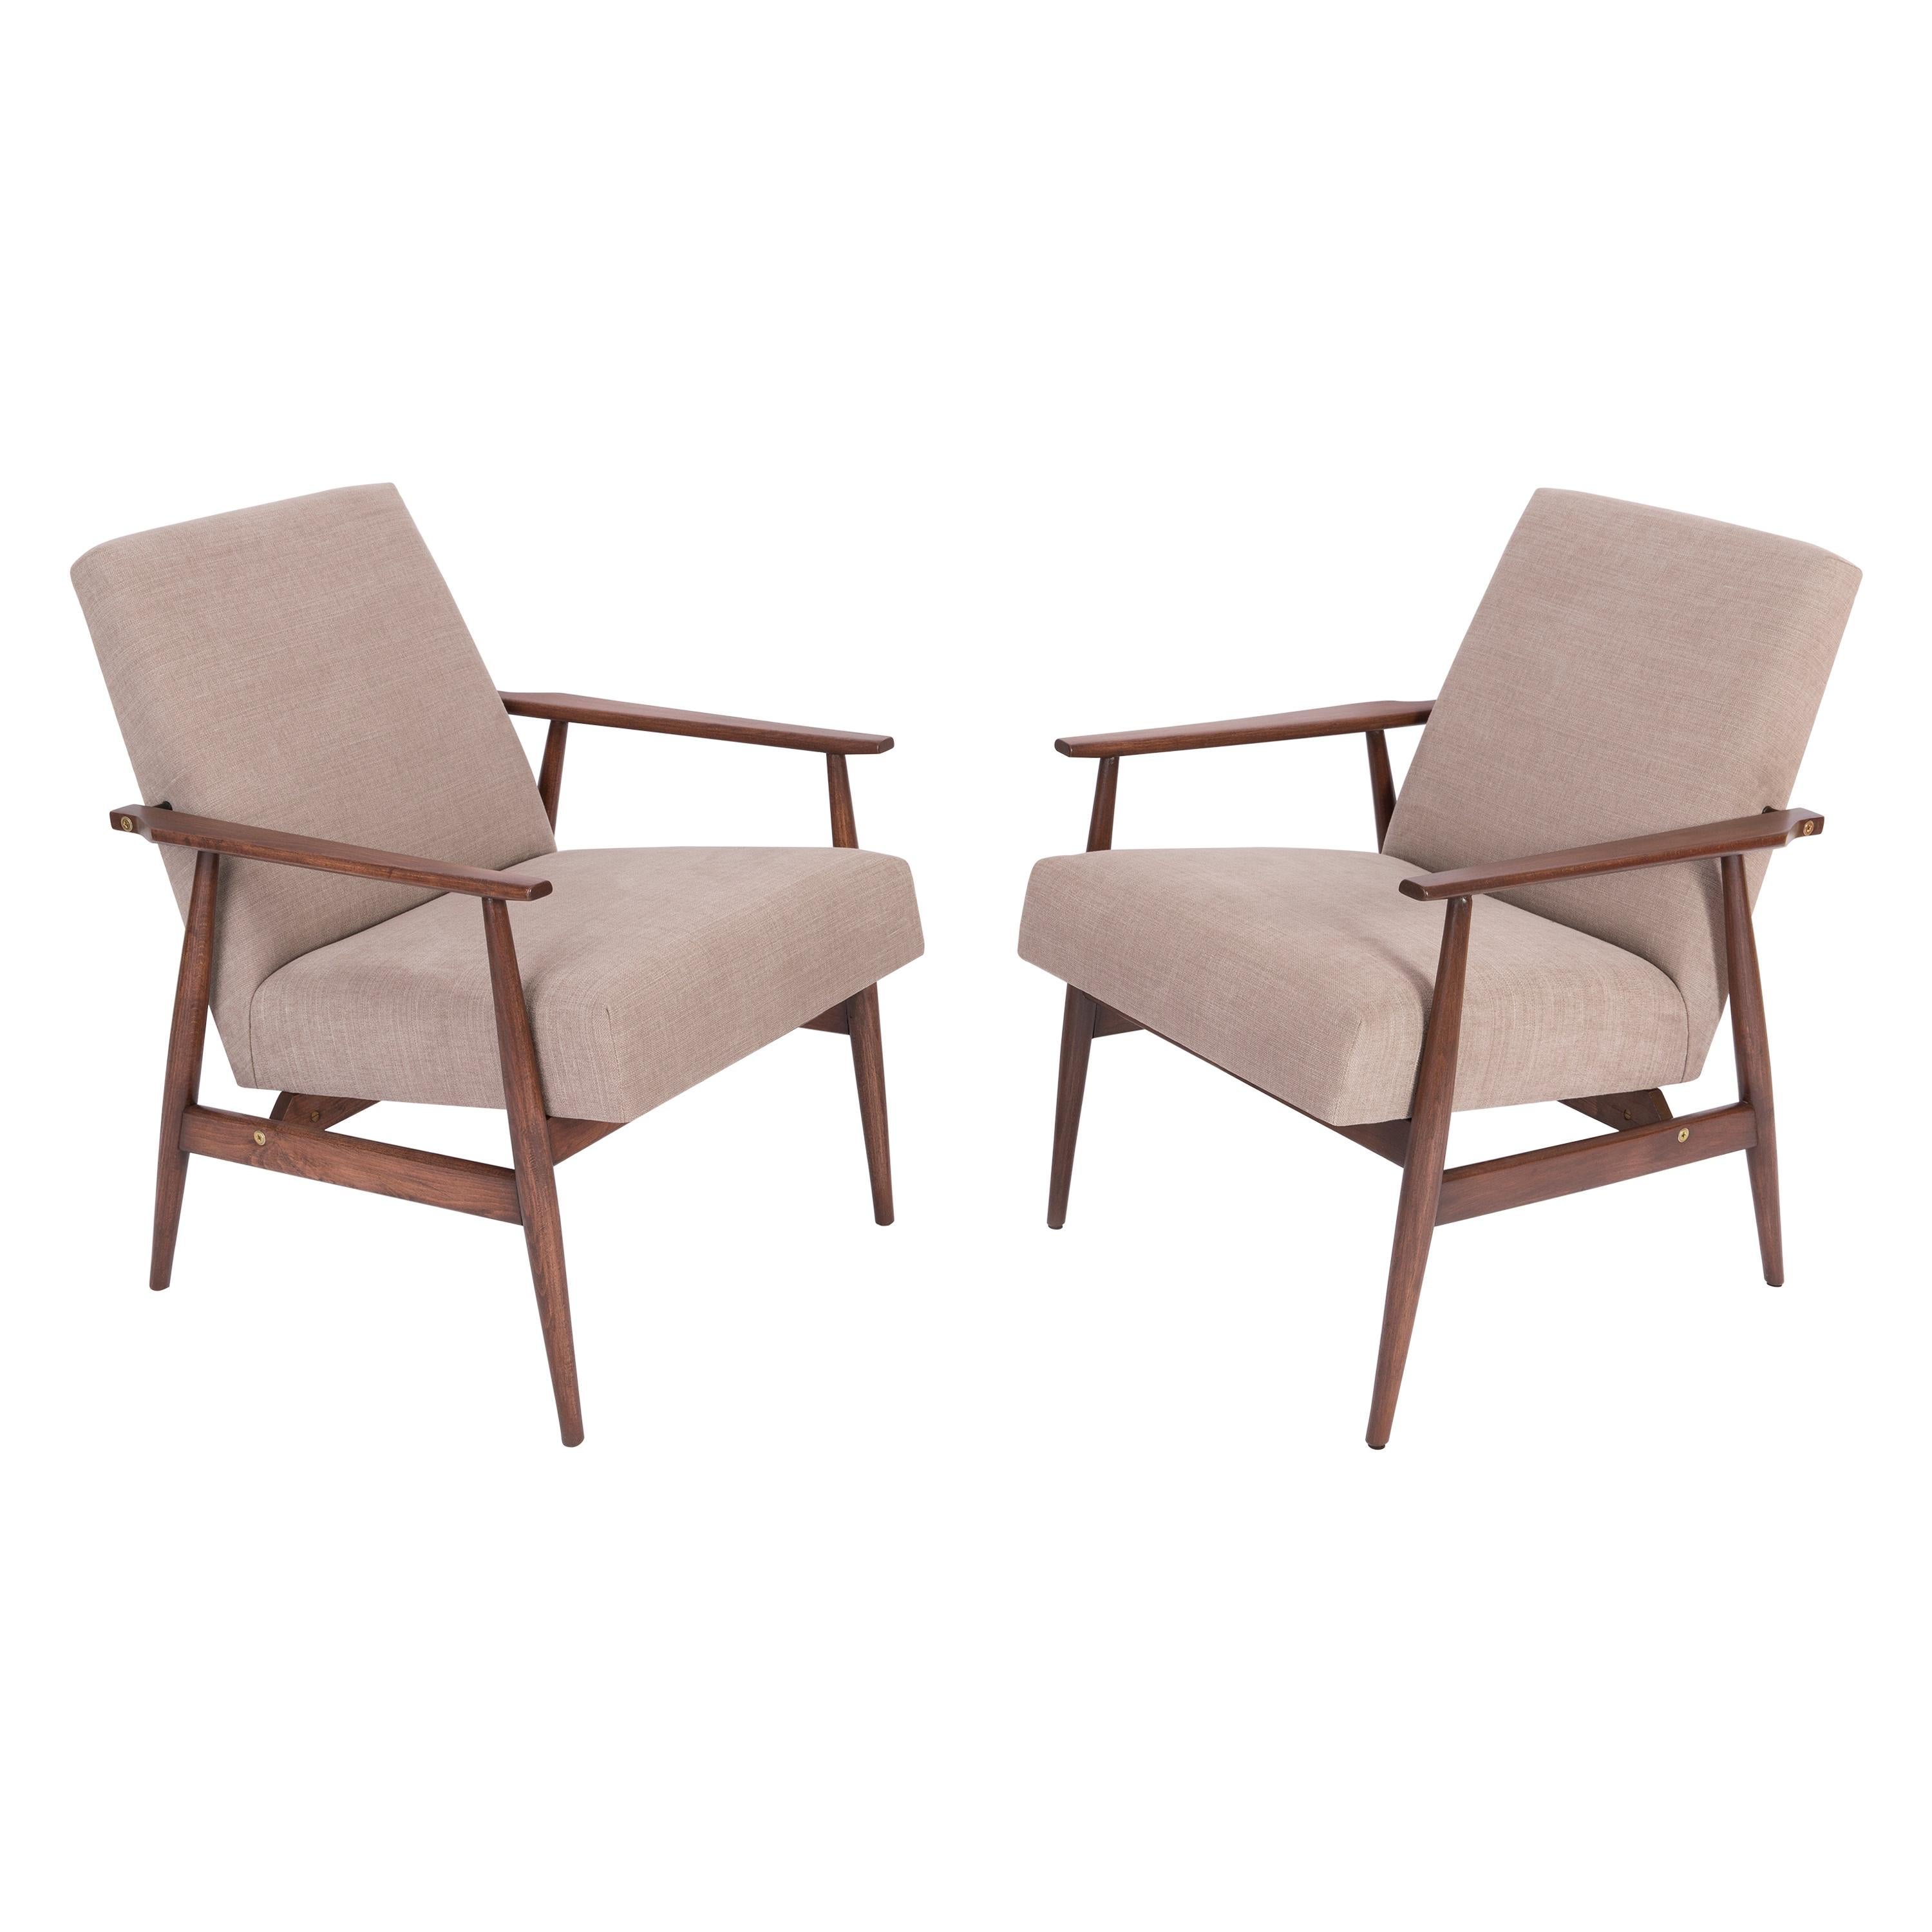 Set of Two 20th Century Beige Dante Armchairs, H. Lis, 1960s